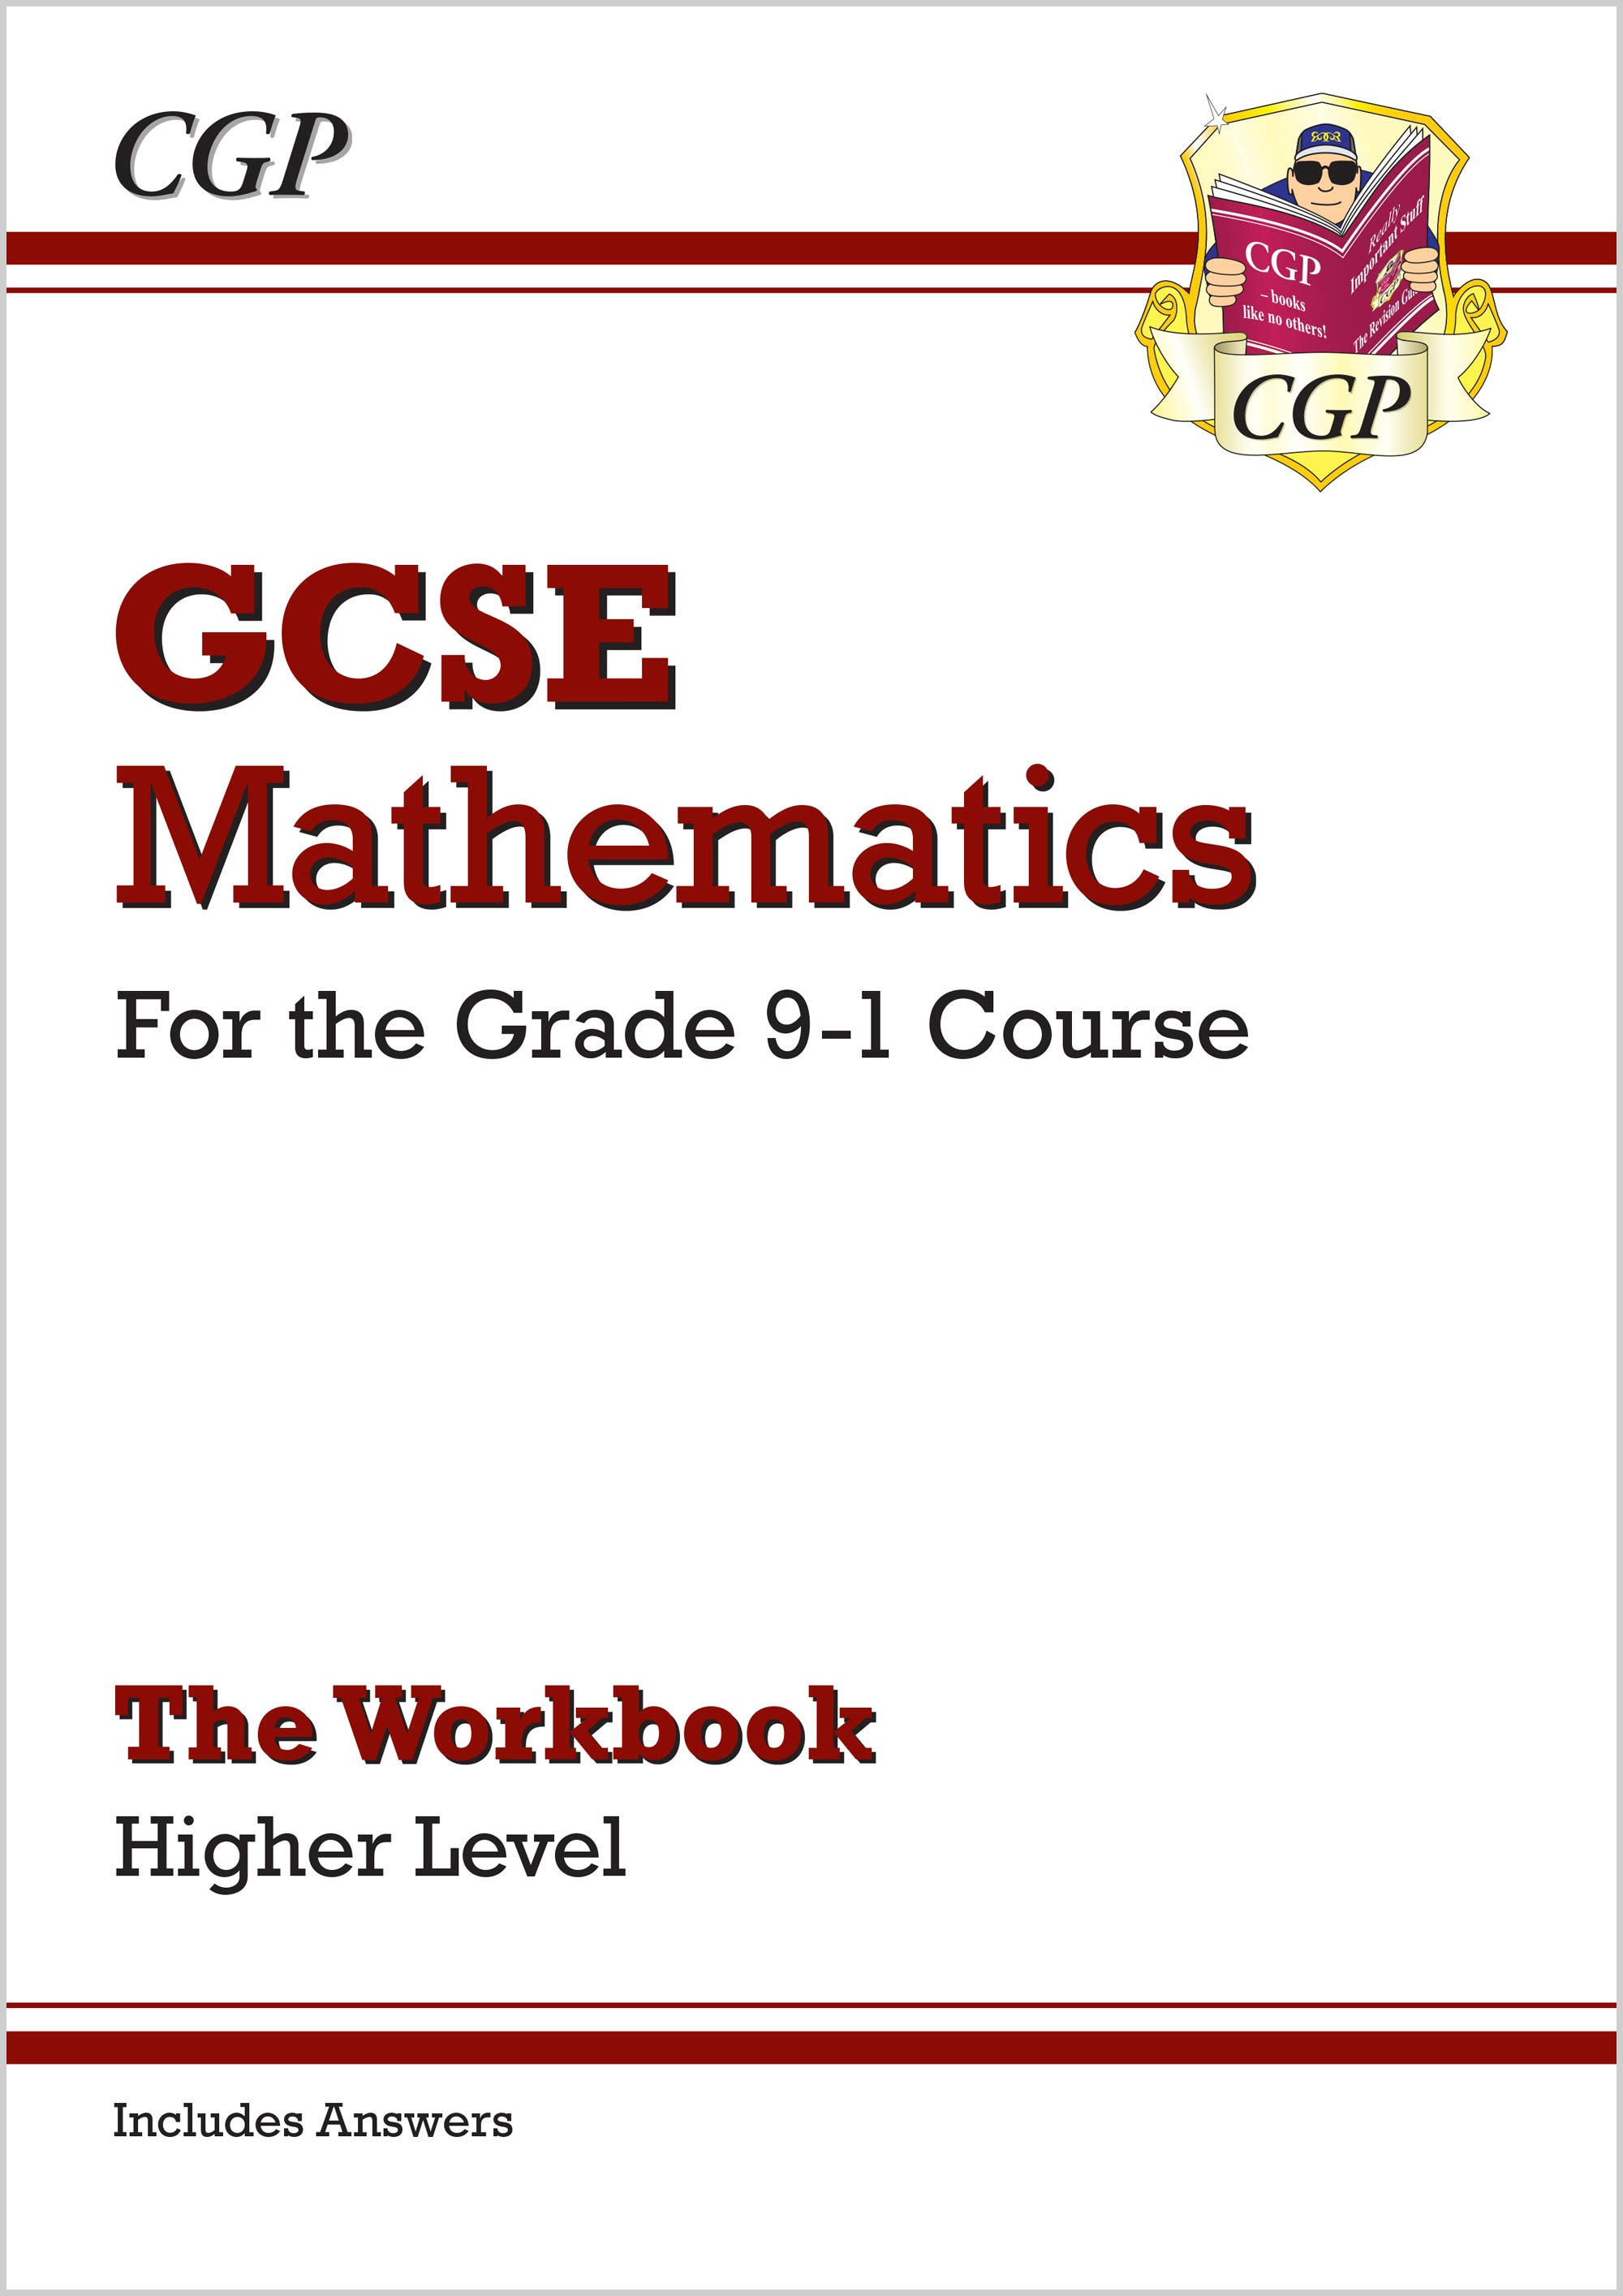 MHW46B - GCSE Maths Workbook: Higher - for the Grade 9-1 Course (includes Answers)